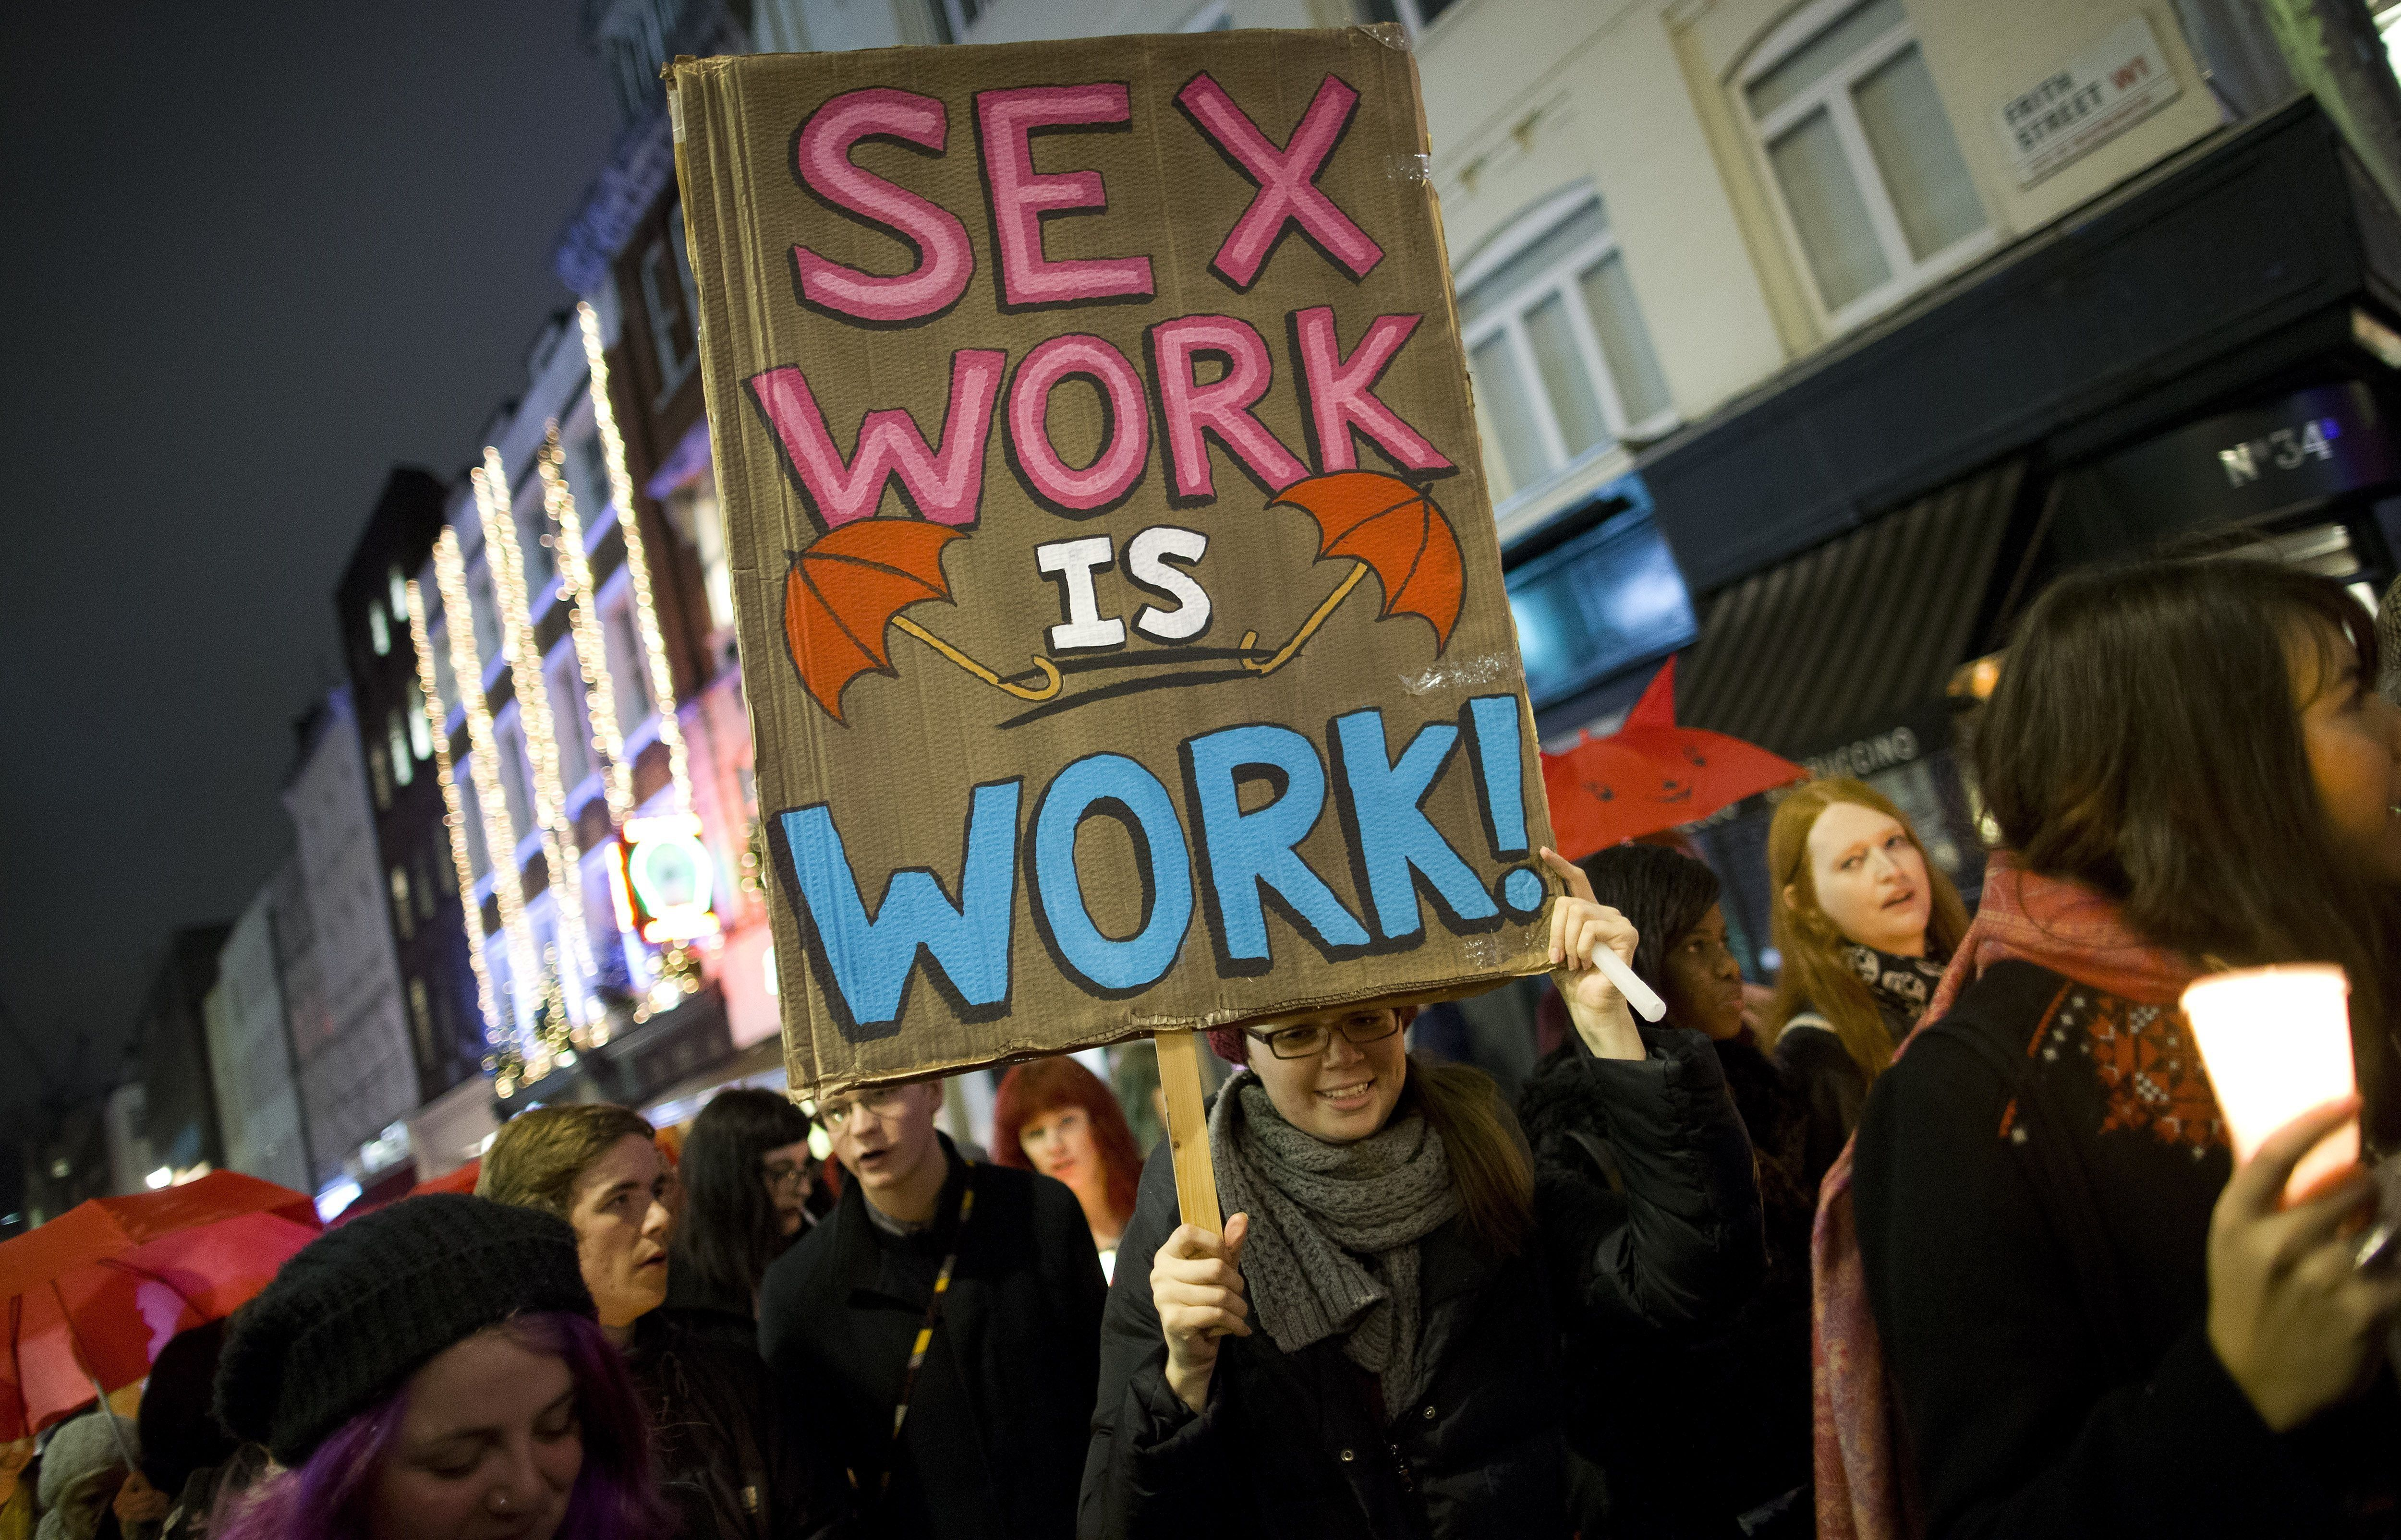 A protester holds a placard whilst marching through Soho after a candle-lit vigil to mark the international day to end violence against sex workers, organised by the English Collective of Prostitutes, in London on December 17, 2014. AFP PHOTO / JUSTIN TALLIS        (Photo credit should read JUSTIN TALLIS/AFP/Getty Images)